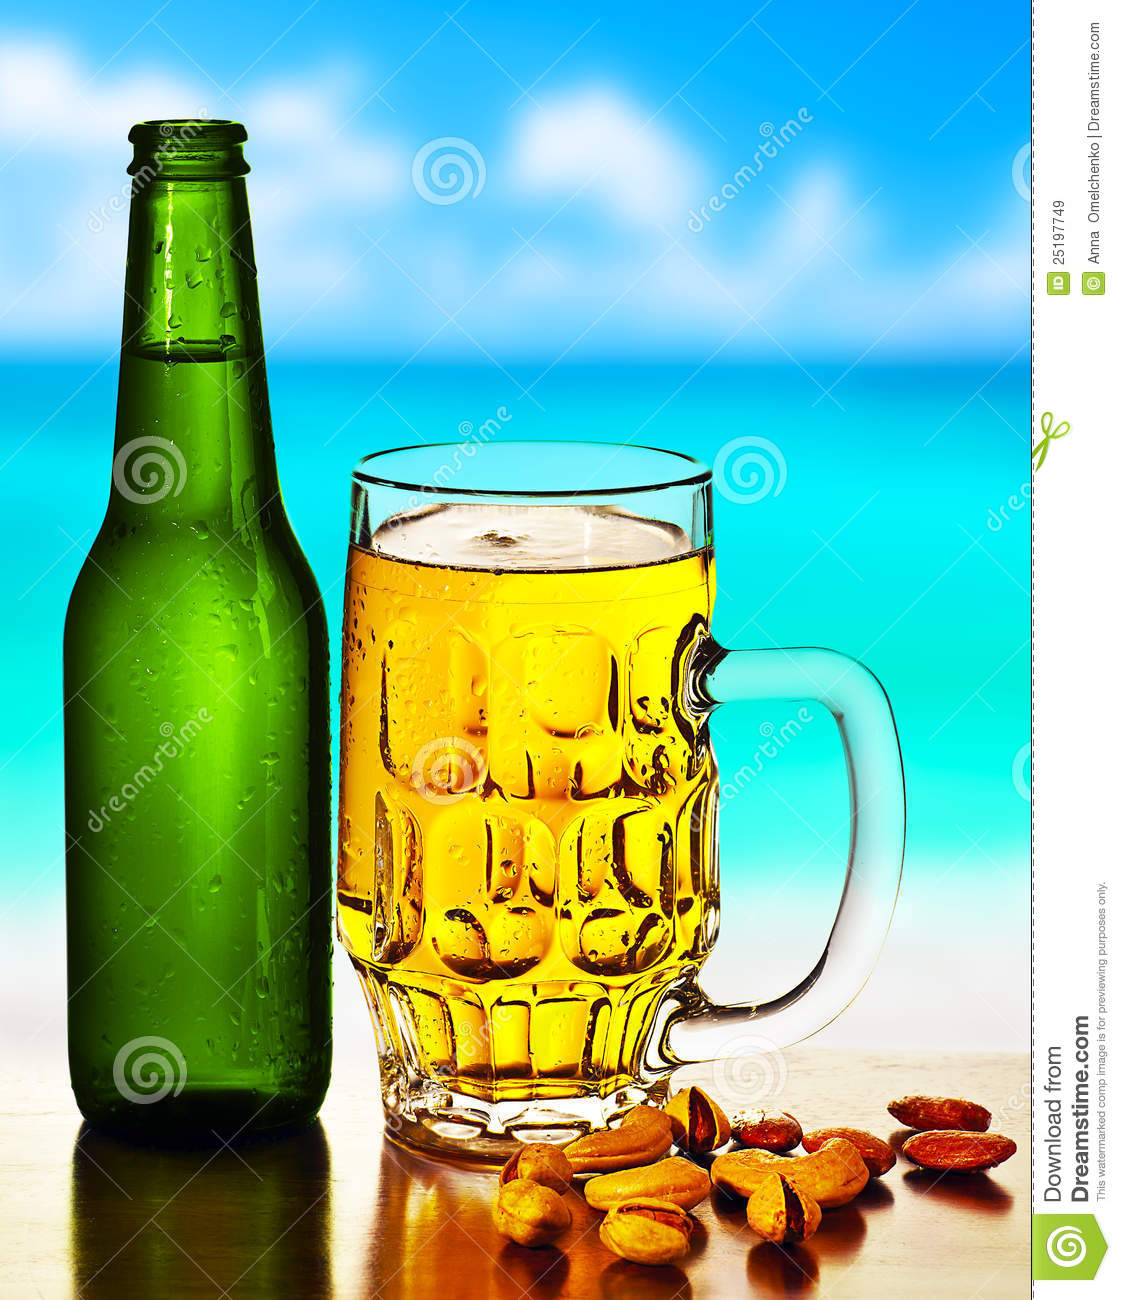 Cold beer on the beach stock image. Image of beach, nuts ...